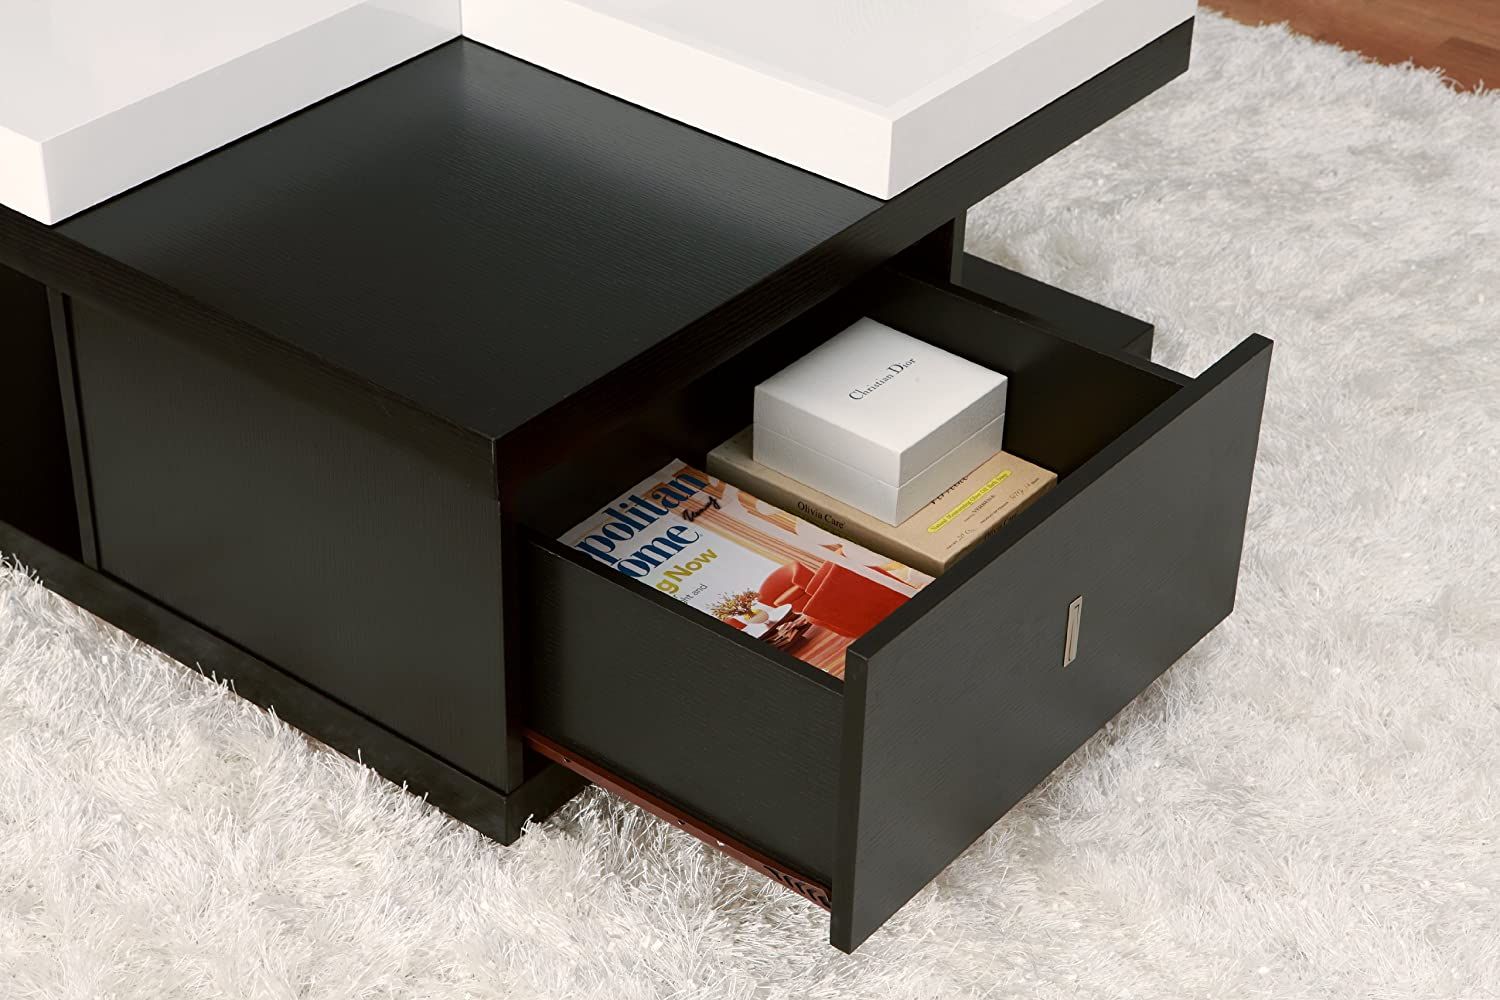 Amazon.com: IoHOMES Morgan Square Coffee Table With Serving Tray, Black:  Kitchen U0026 Dining